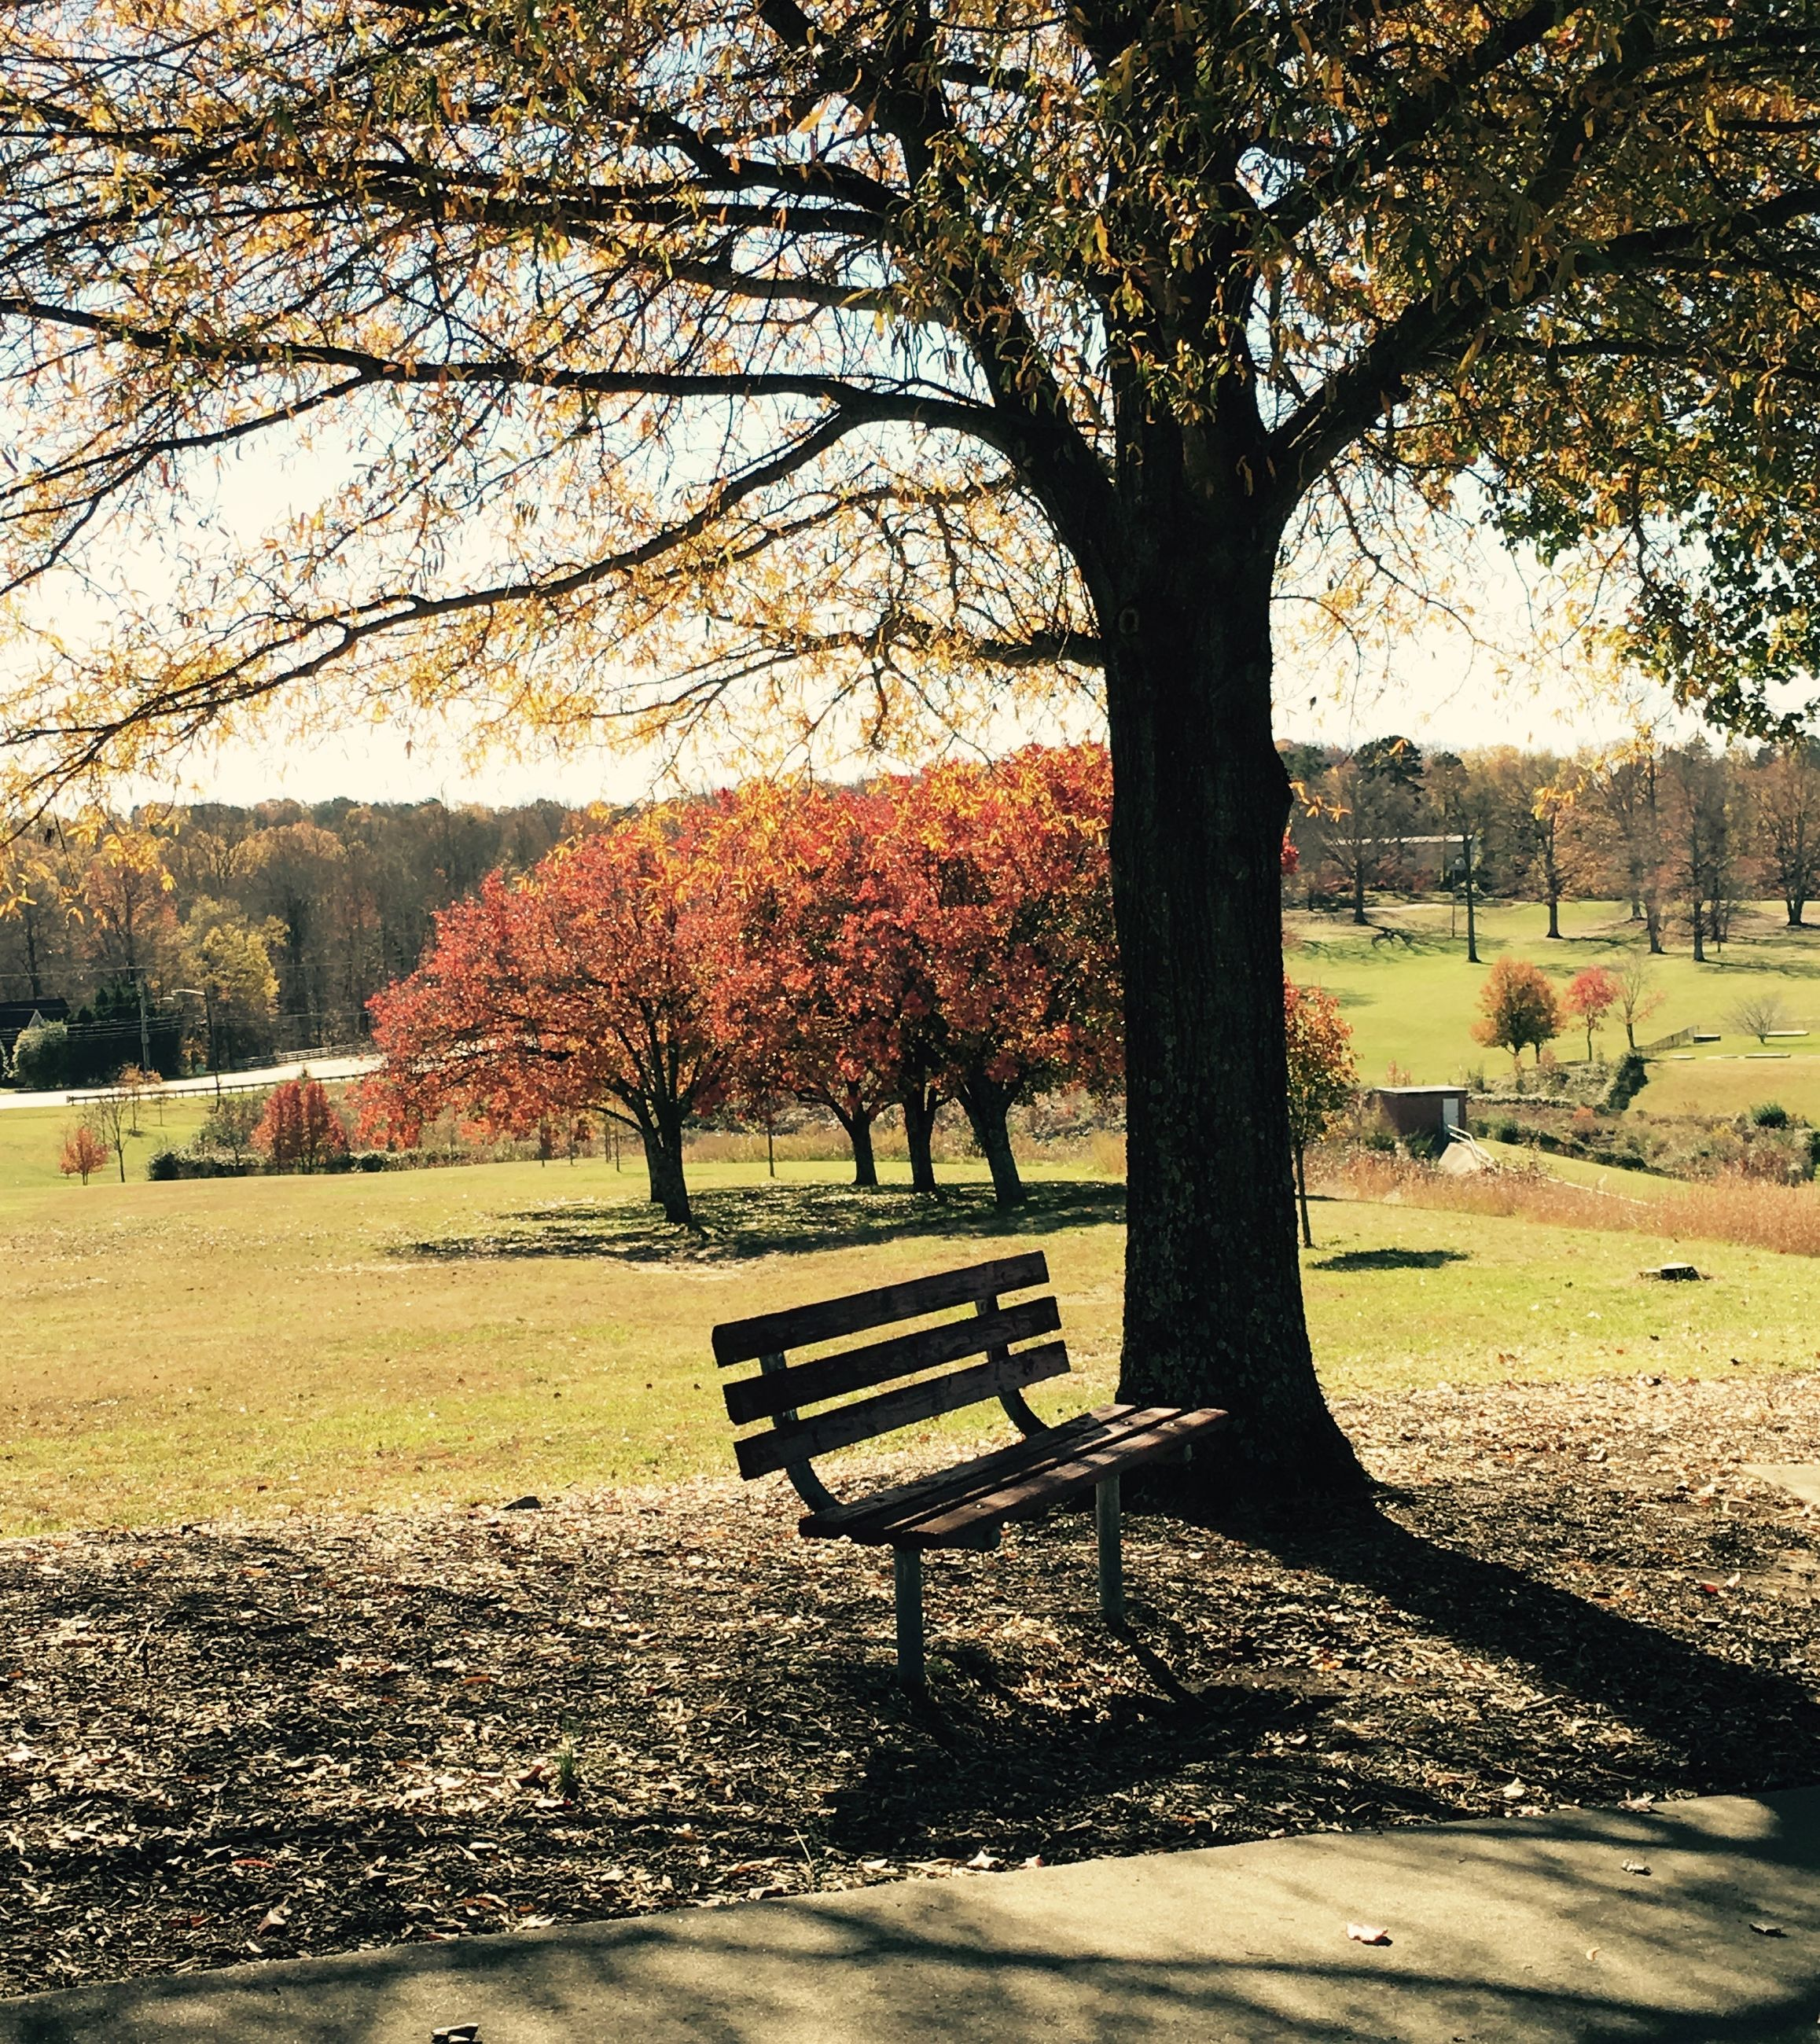 tree, bench, park - man made space, park, tranquility, branch, park bench, tranquil scene, nature, grass, empty, tree trunk, absence, scenics, growth, beauty in nature, sunlight, chair, relaxation, shadow